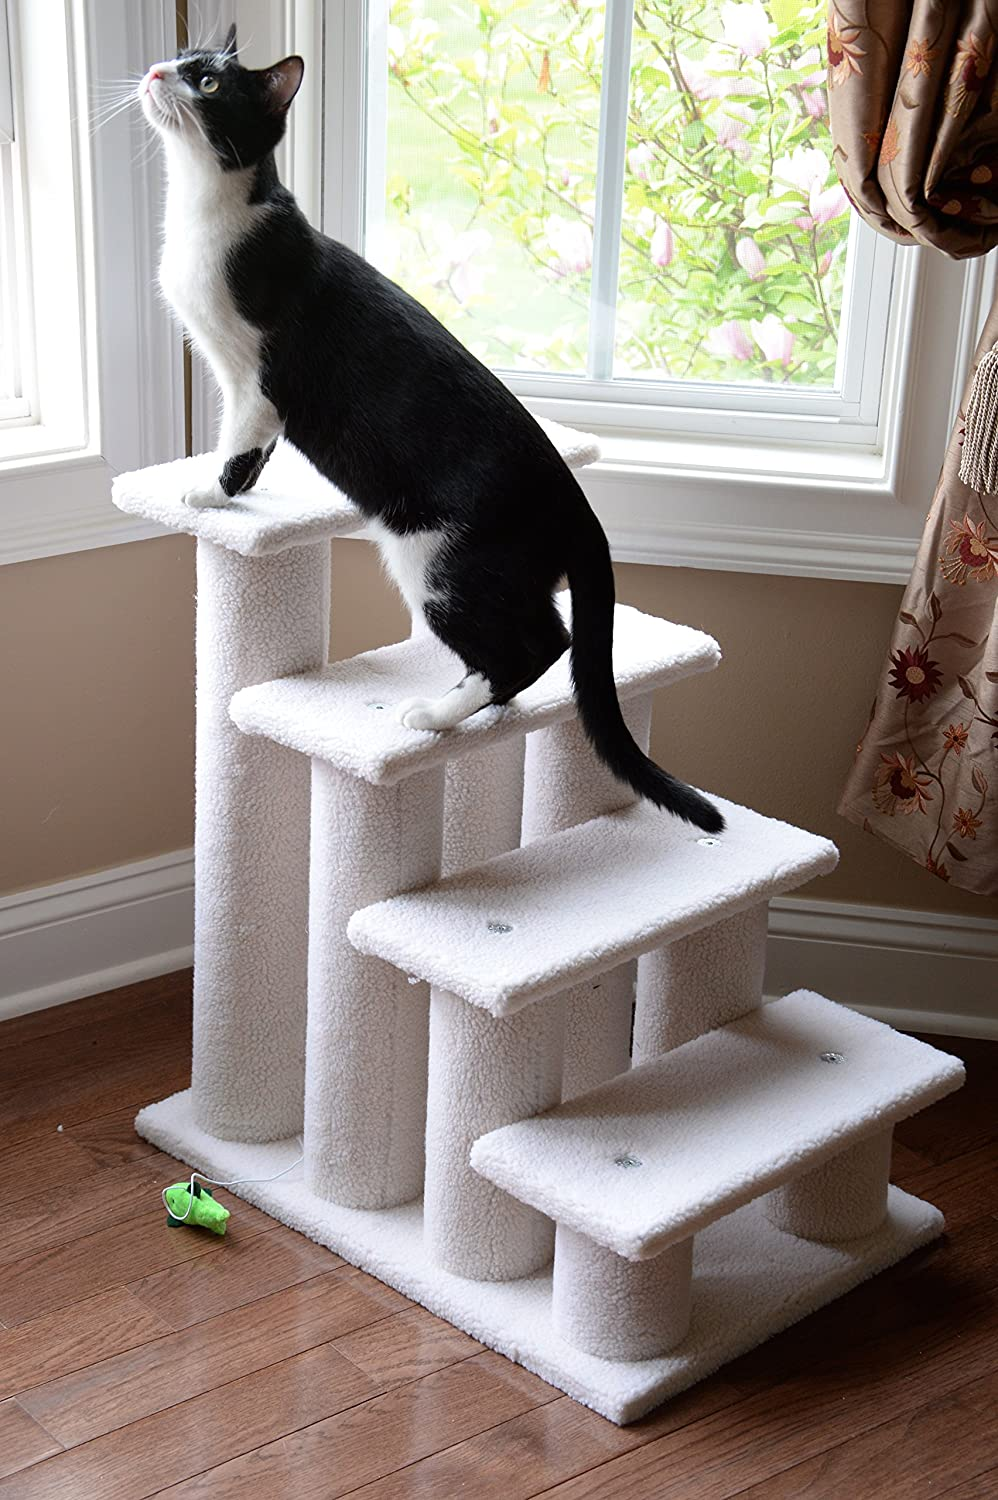 best Tripawd stairs for cats and dogs